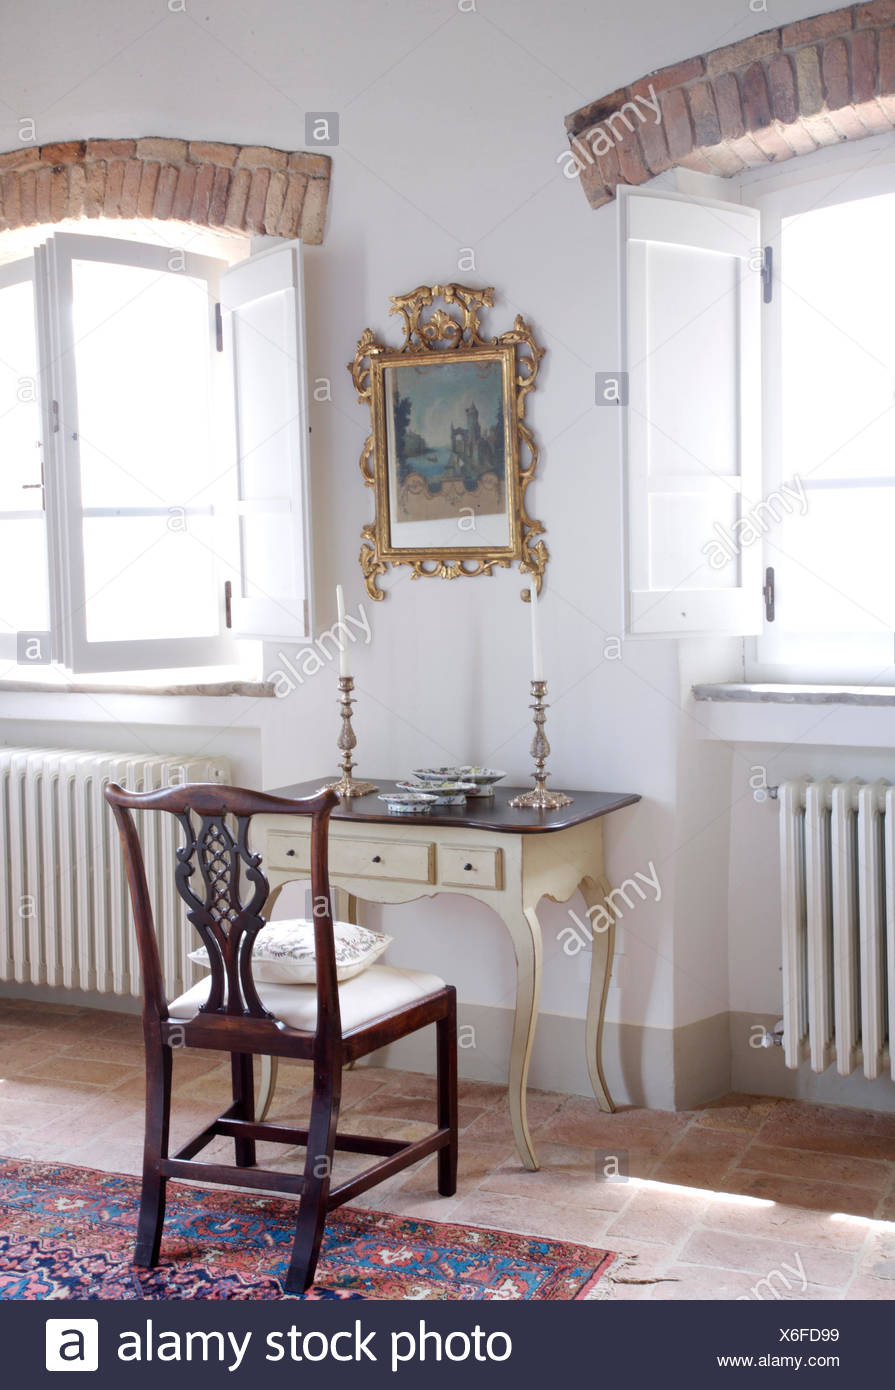 Gilt framed picture above small antique dressing table with silver candlesticks and antique chair in Italian bedroom Stock Photo